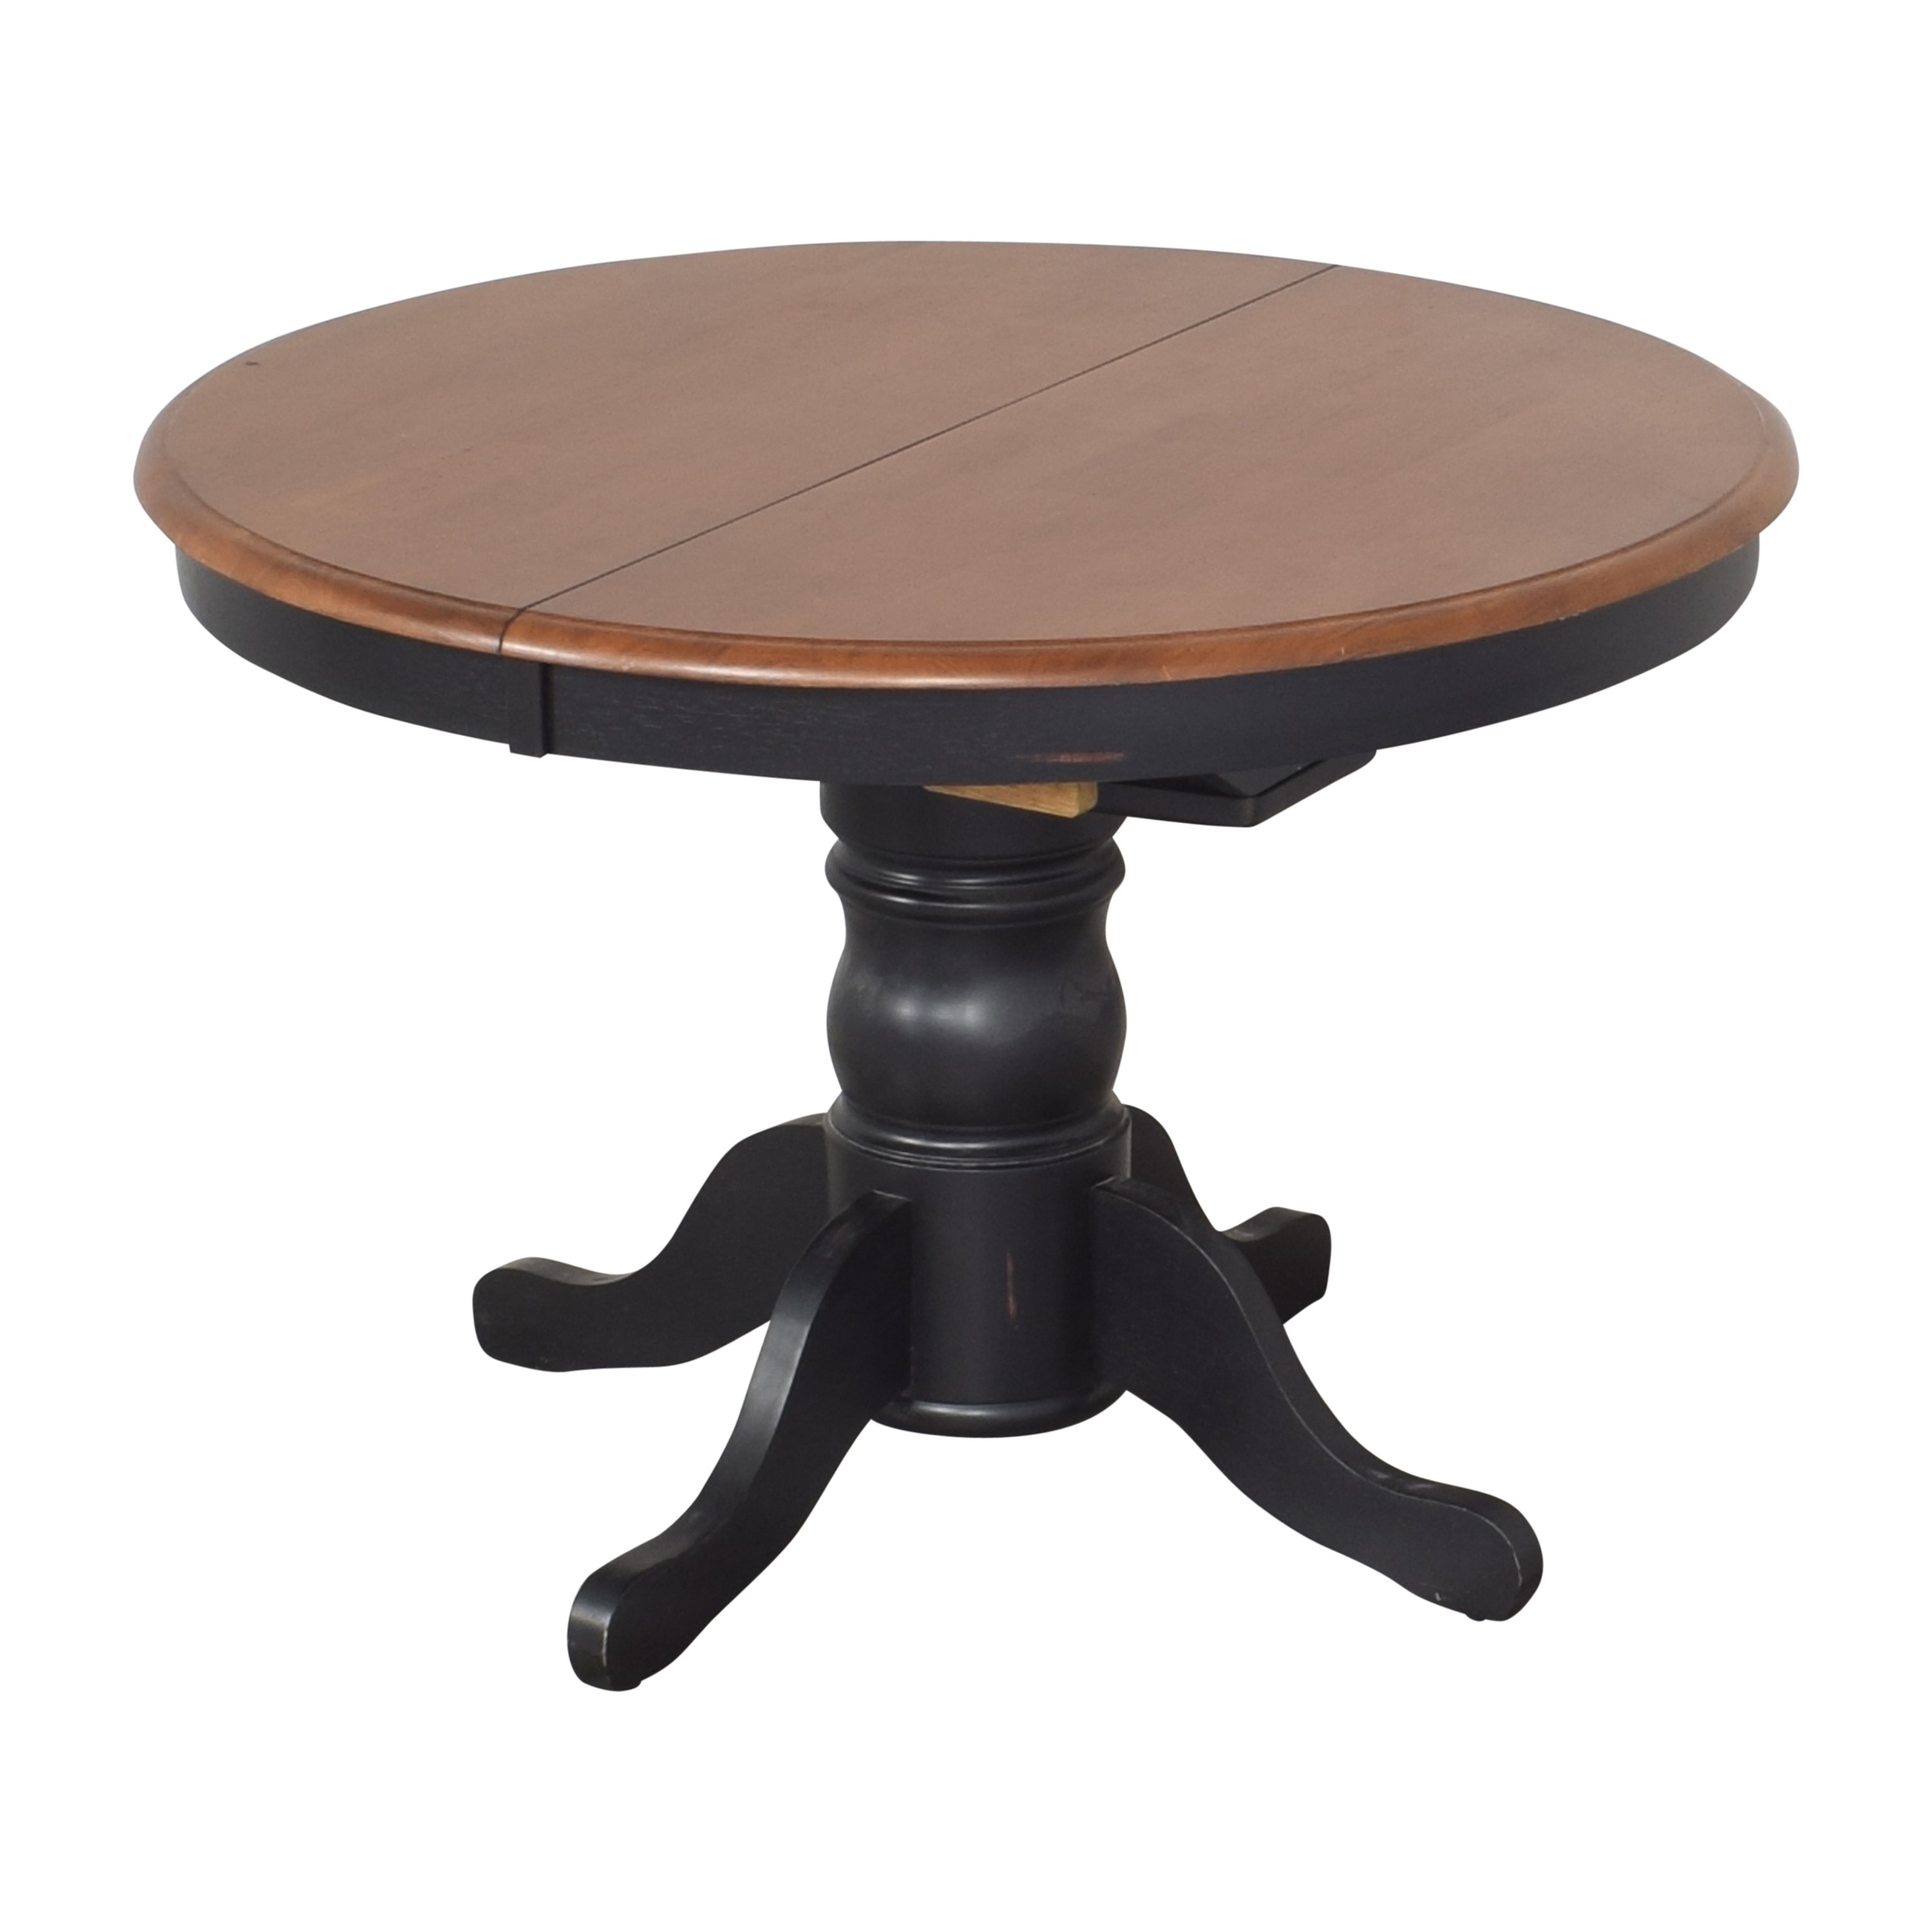 shop Bloomingdale's Bloomingdale's Round Extendable Dining Table online